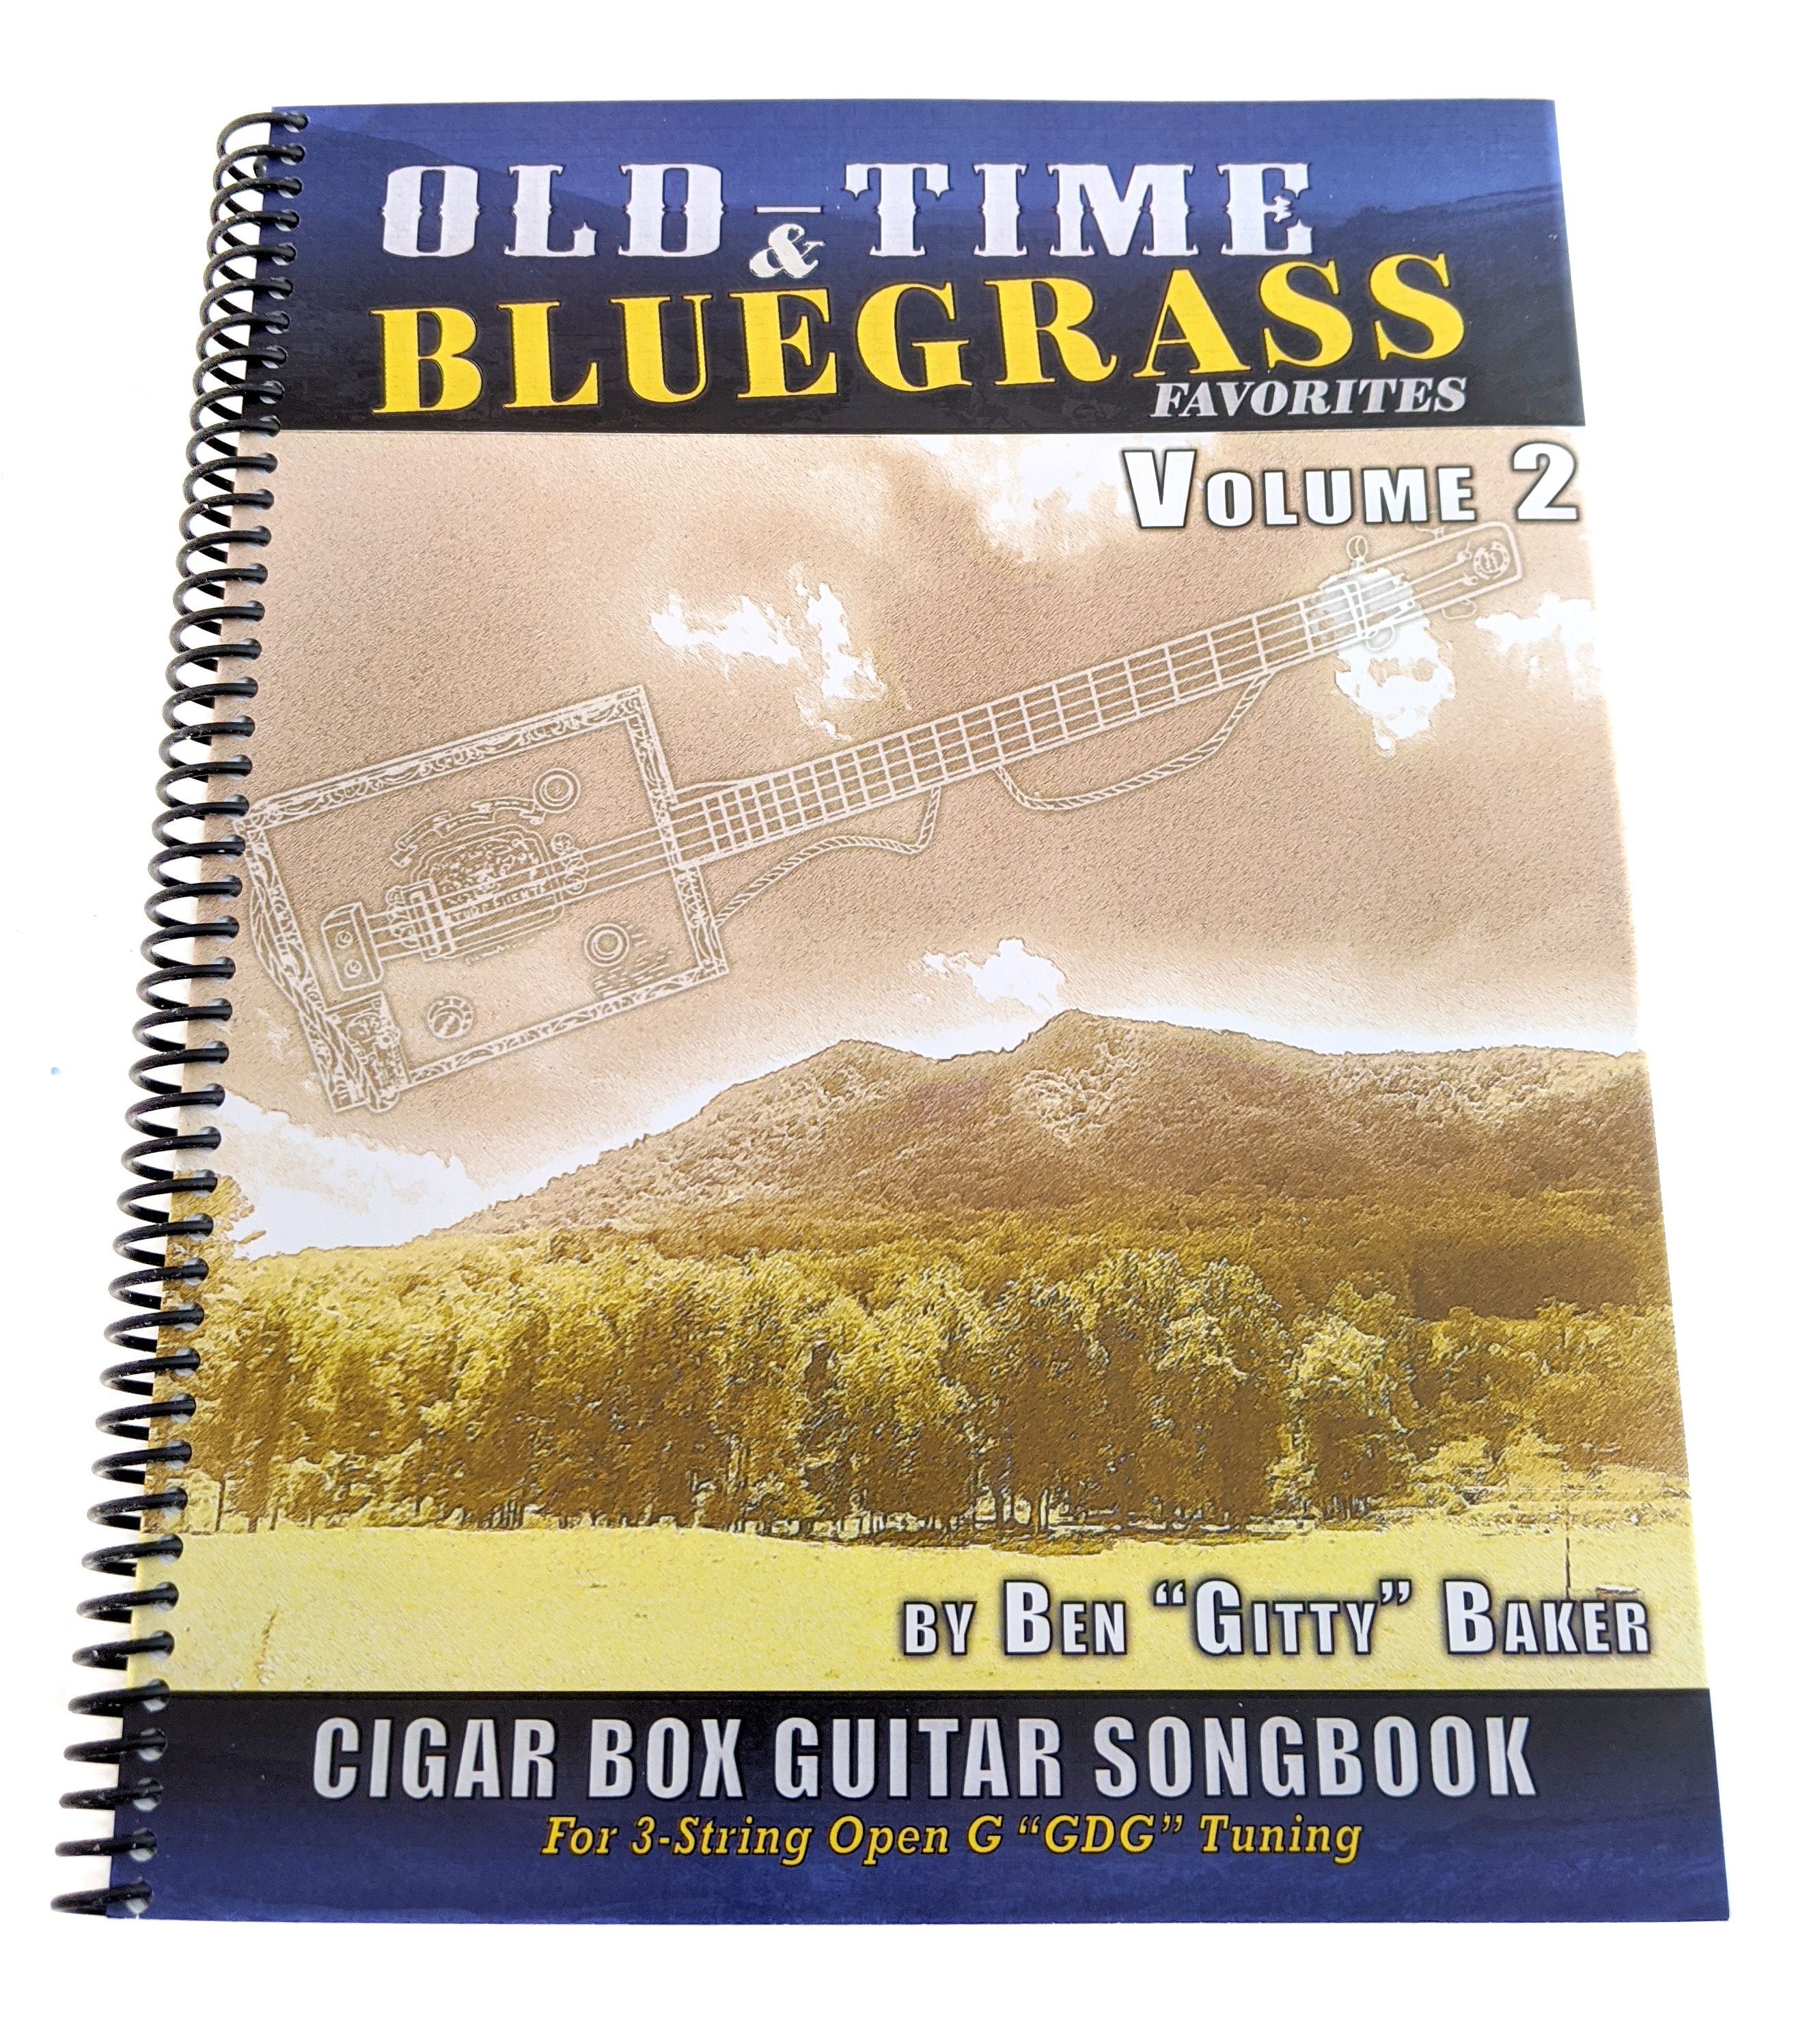 Old-Time and Bluegrass Favorites Cigar Box Guitar Songbook - Volume 2 (Limited-Edition Spiral-Bound Version)